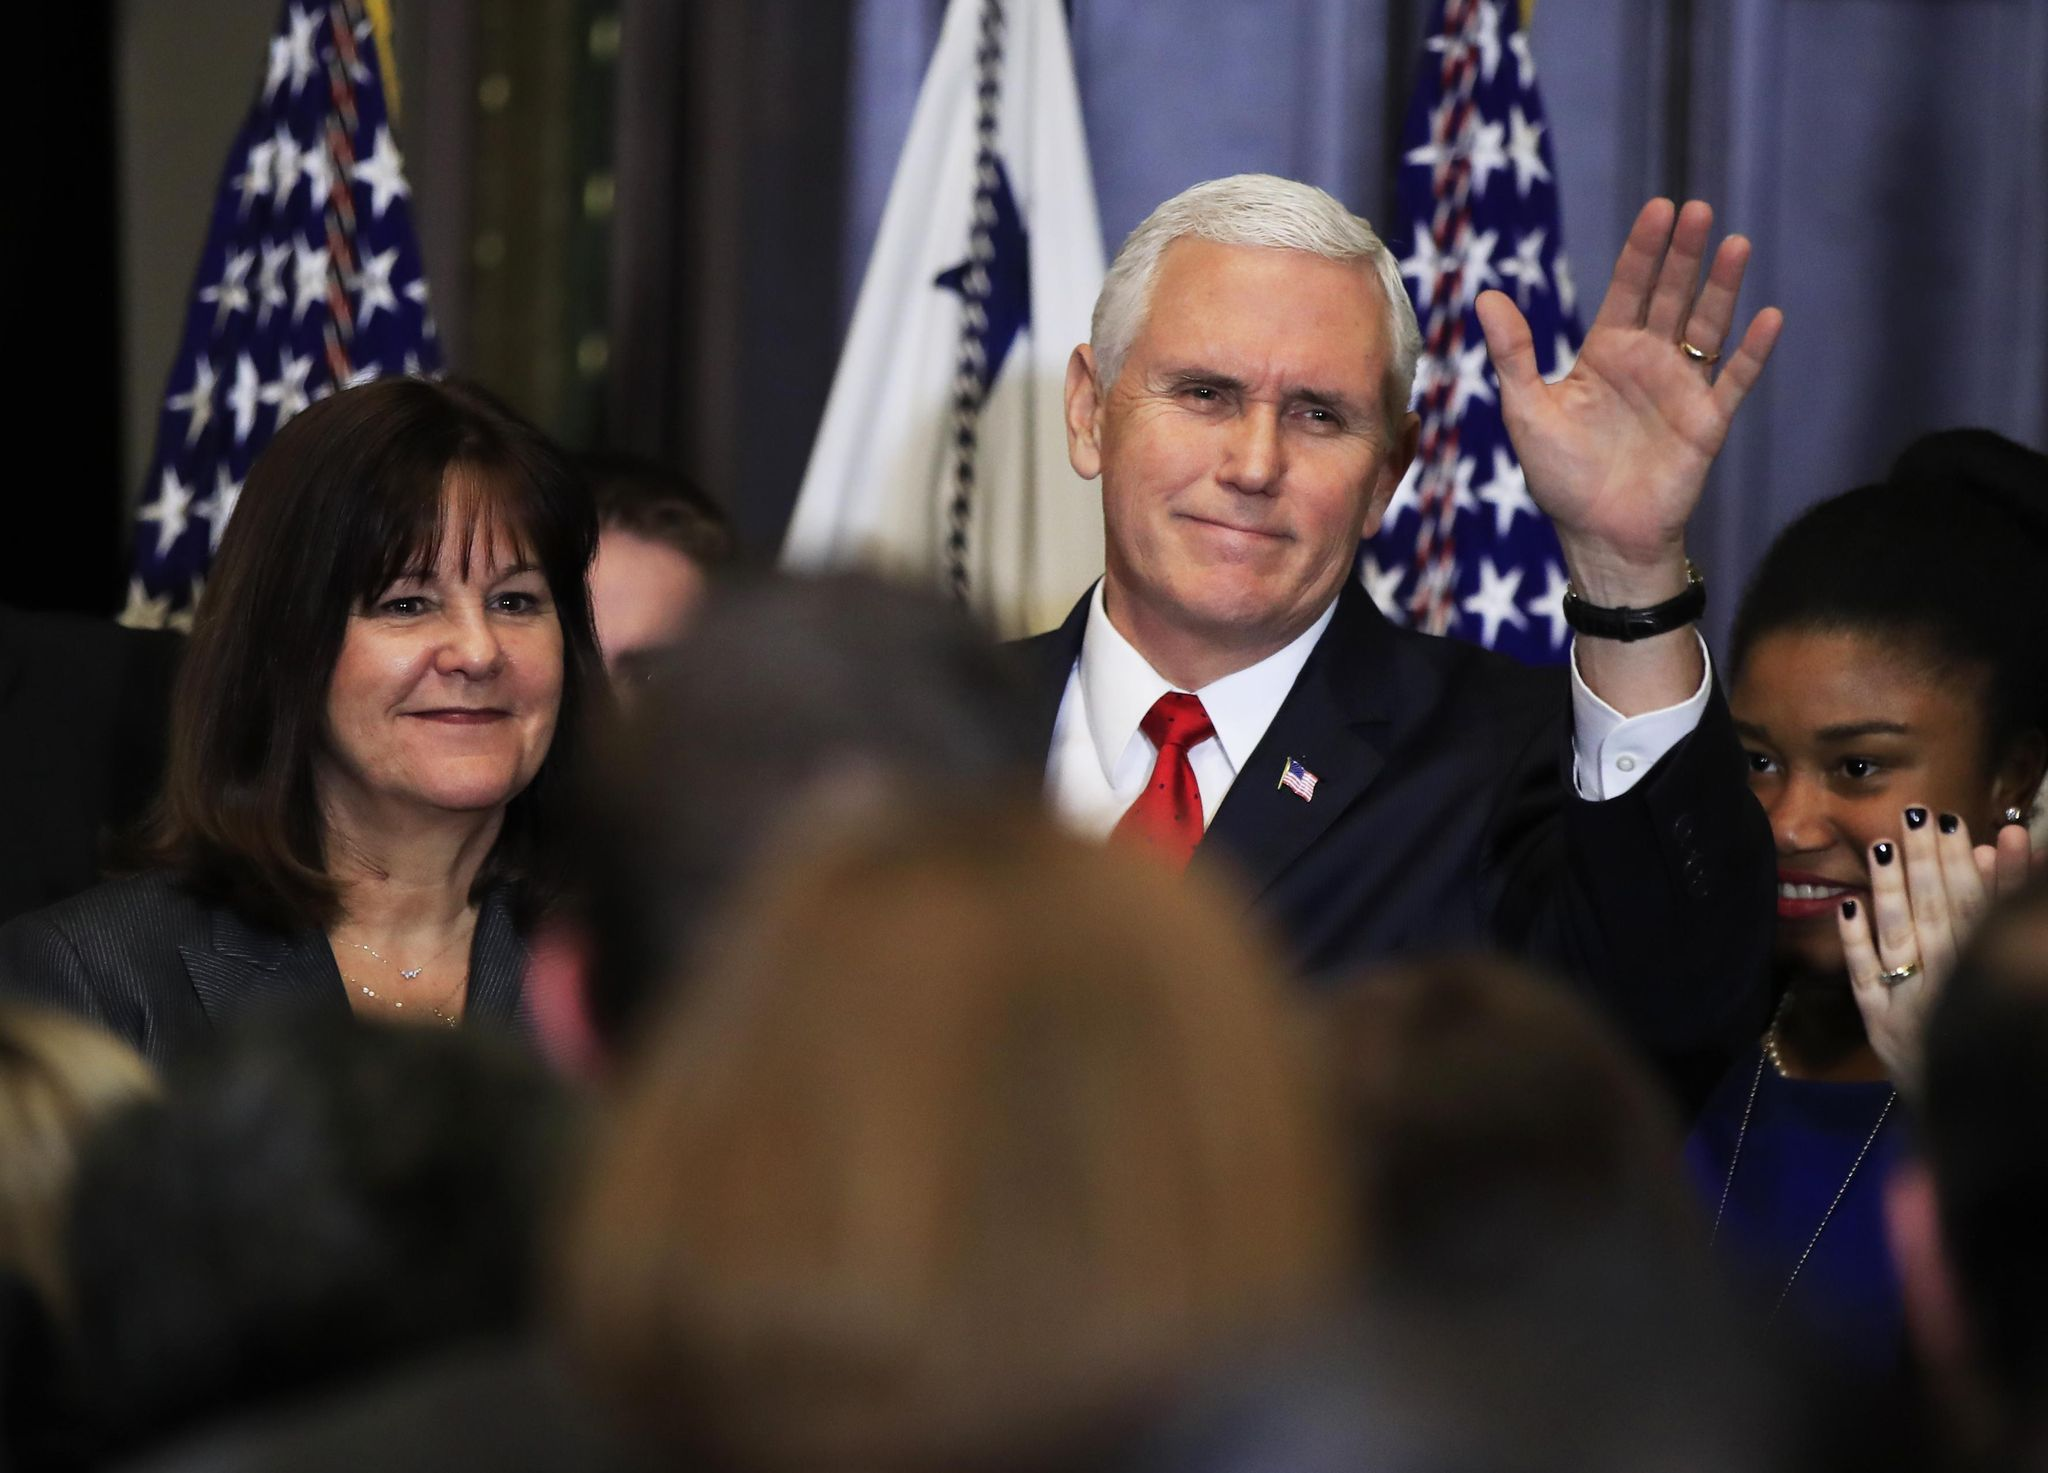 Trump addresses March for Life via video; Pences attend pre-march rally in person